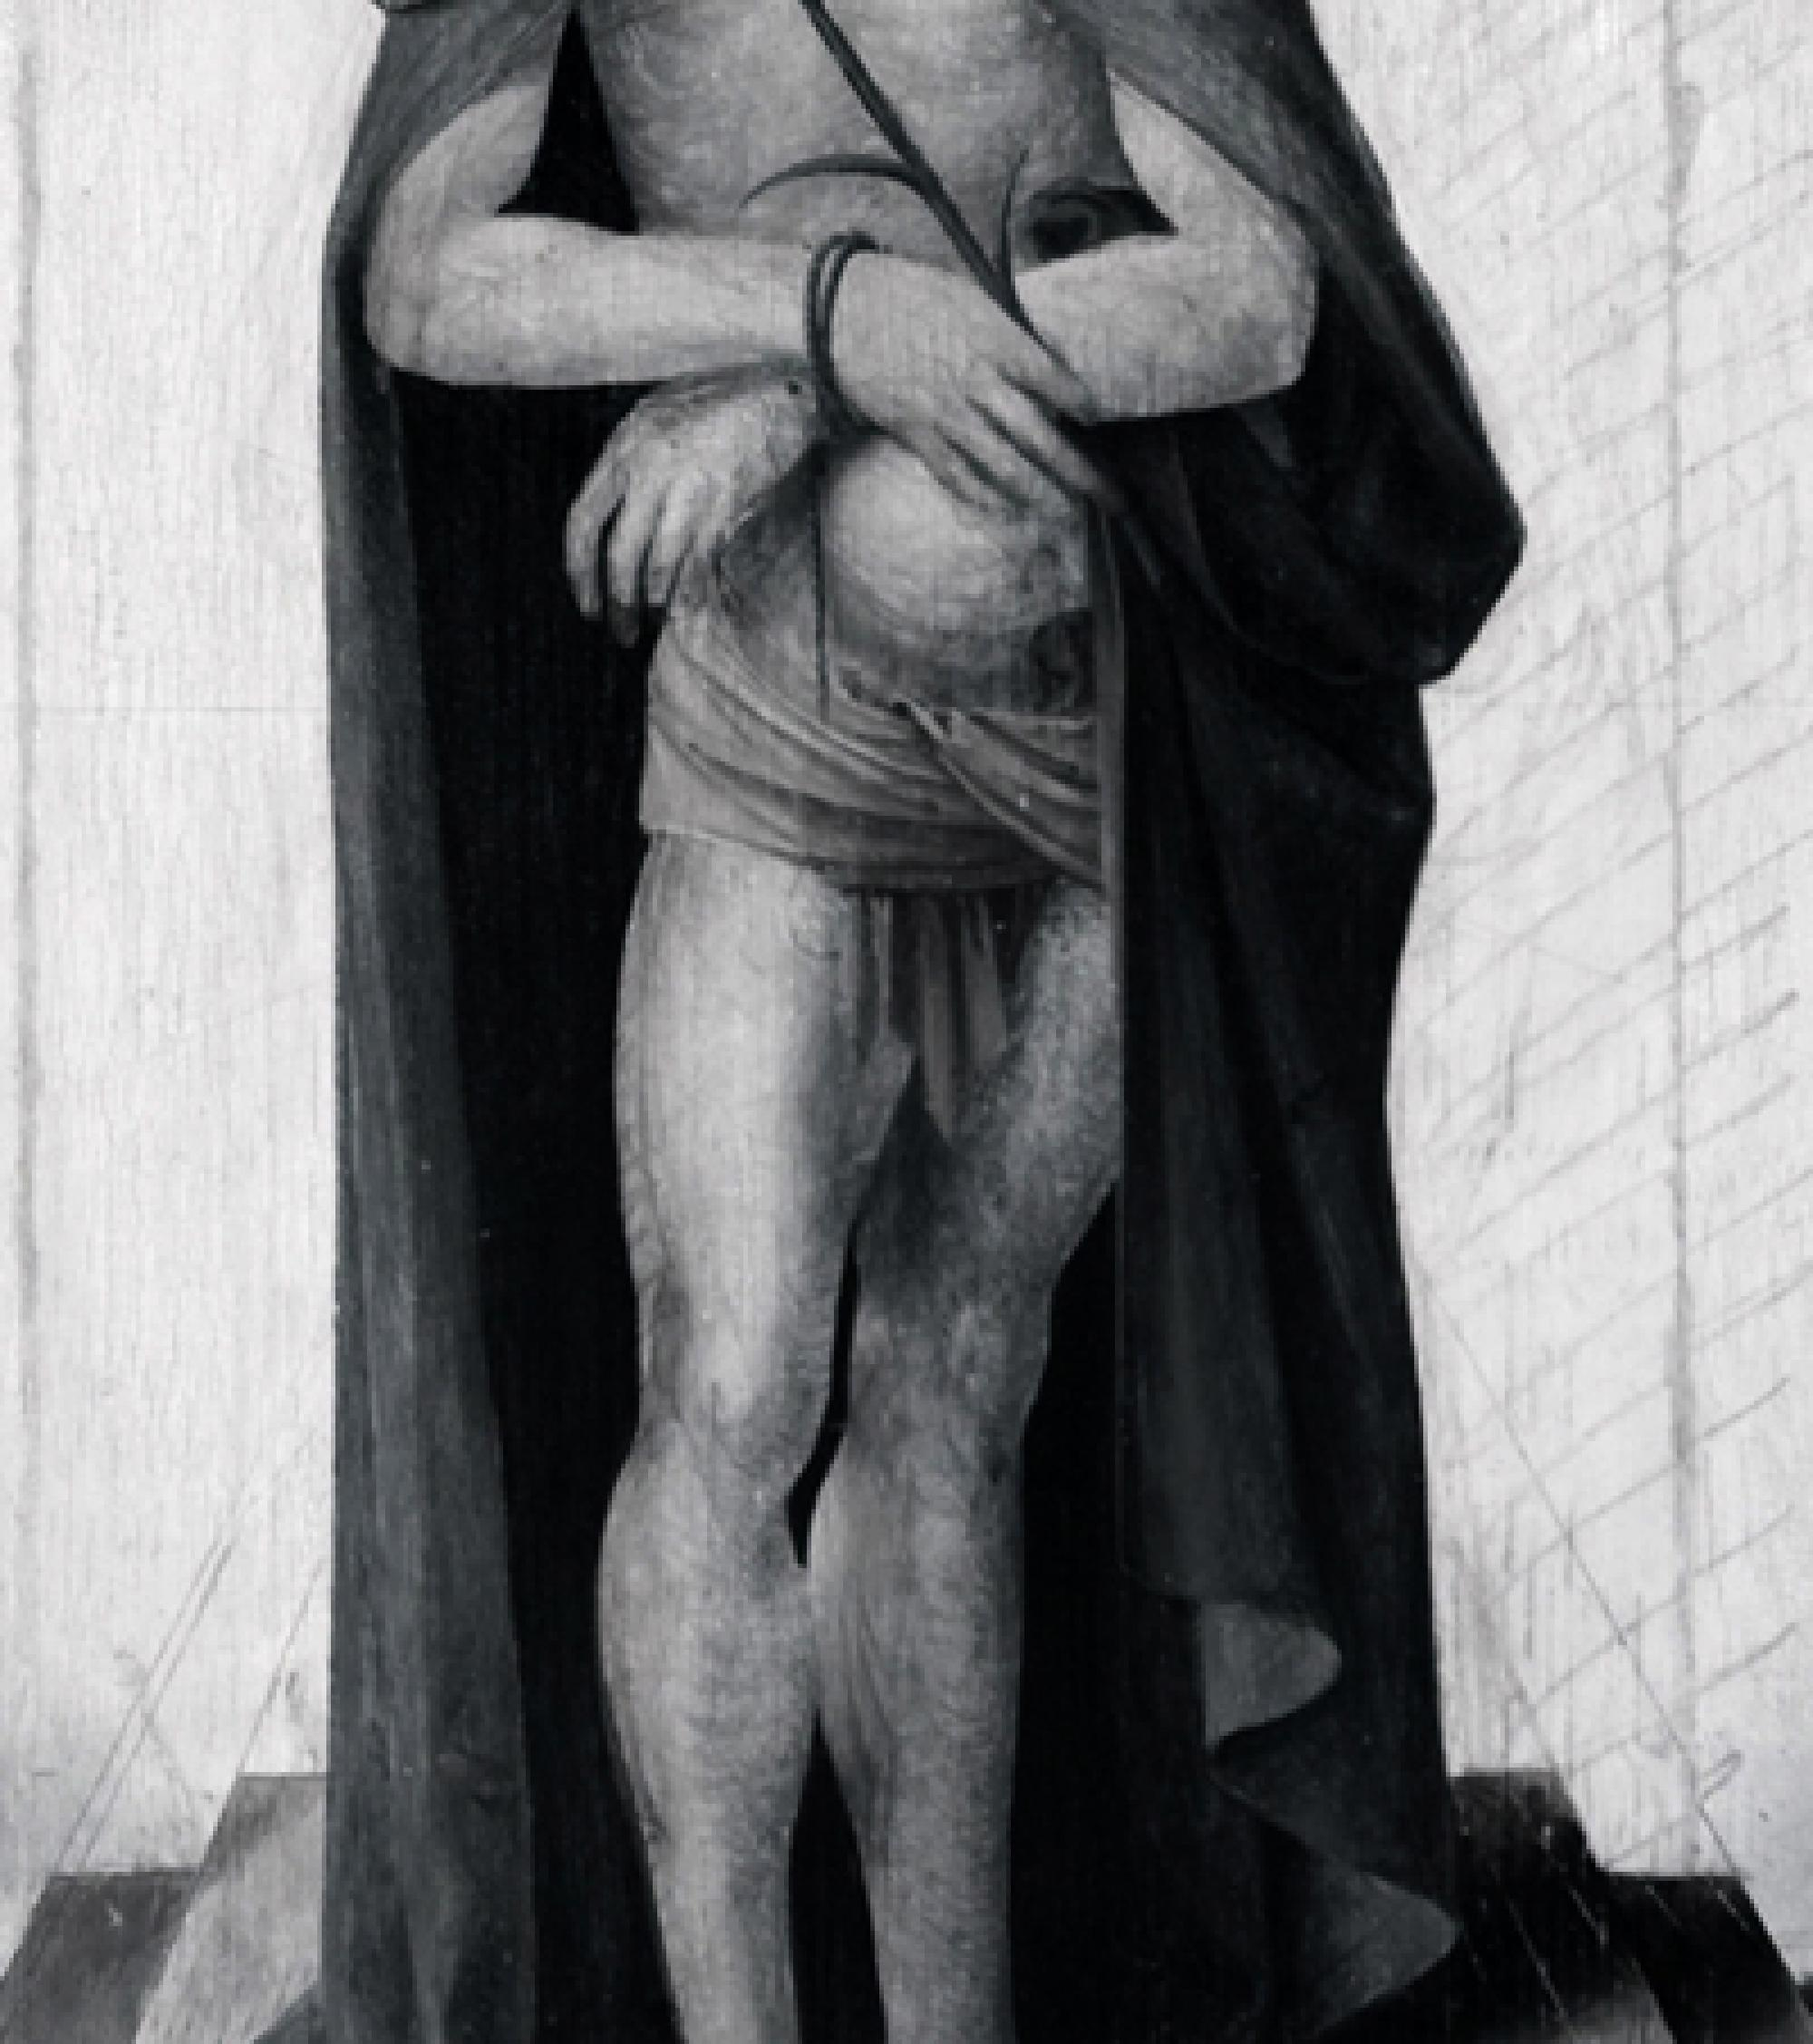 """The lines in this underdrawing show up in a detail of a Renaissance painting titled """"Man of Sorrows with Saints and Donors."""" The lines apparent in the infrared converge to a well-defined vanishing point, showing that this particular artist understood the"""